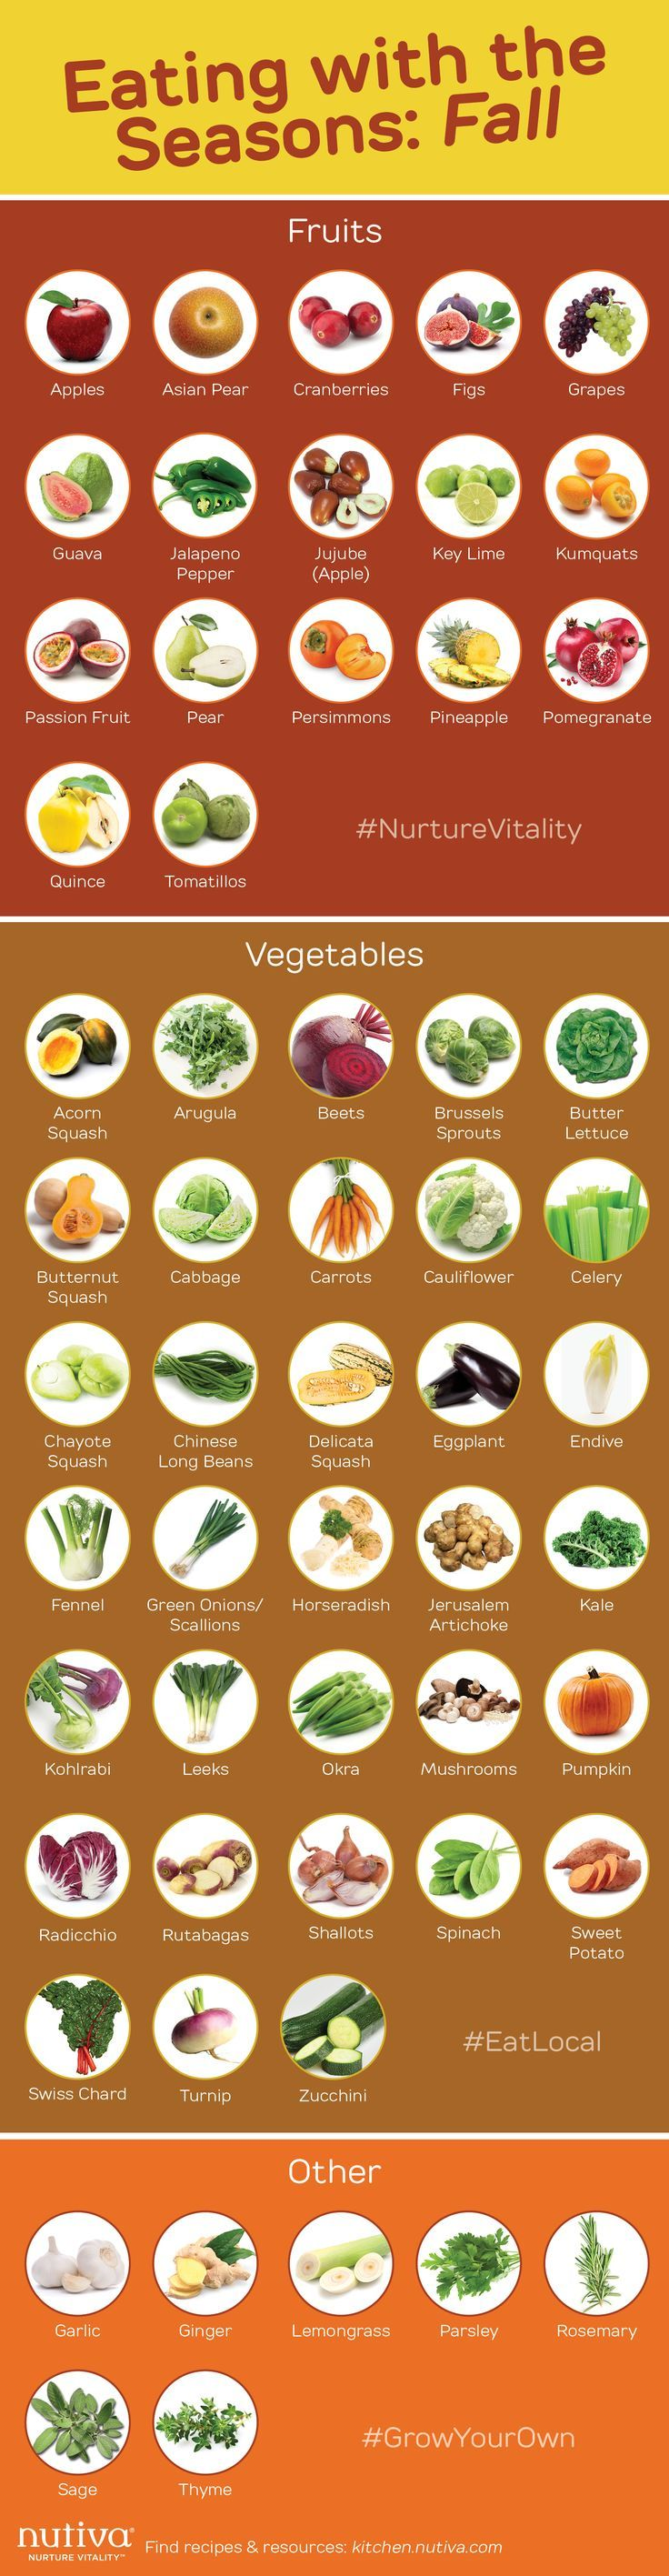 Eating with the Seasons Fall graphic kitchen.nutiva Infographic